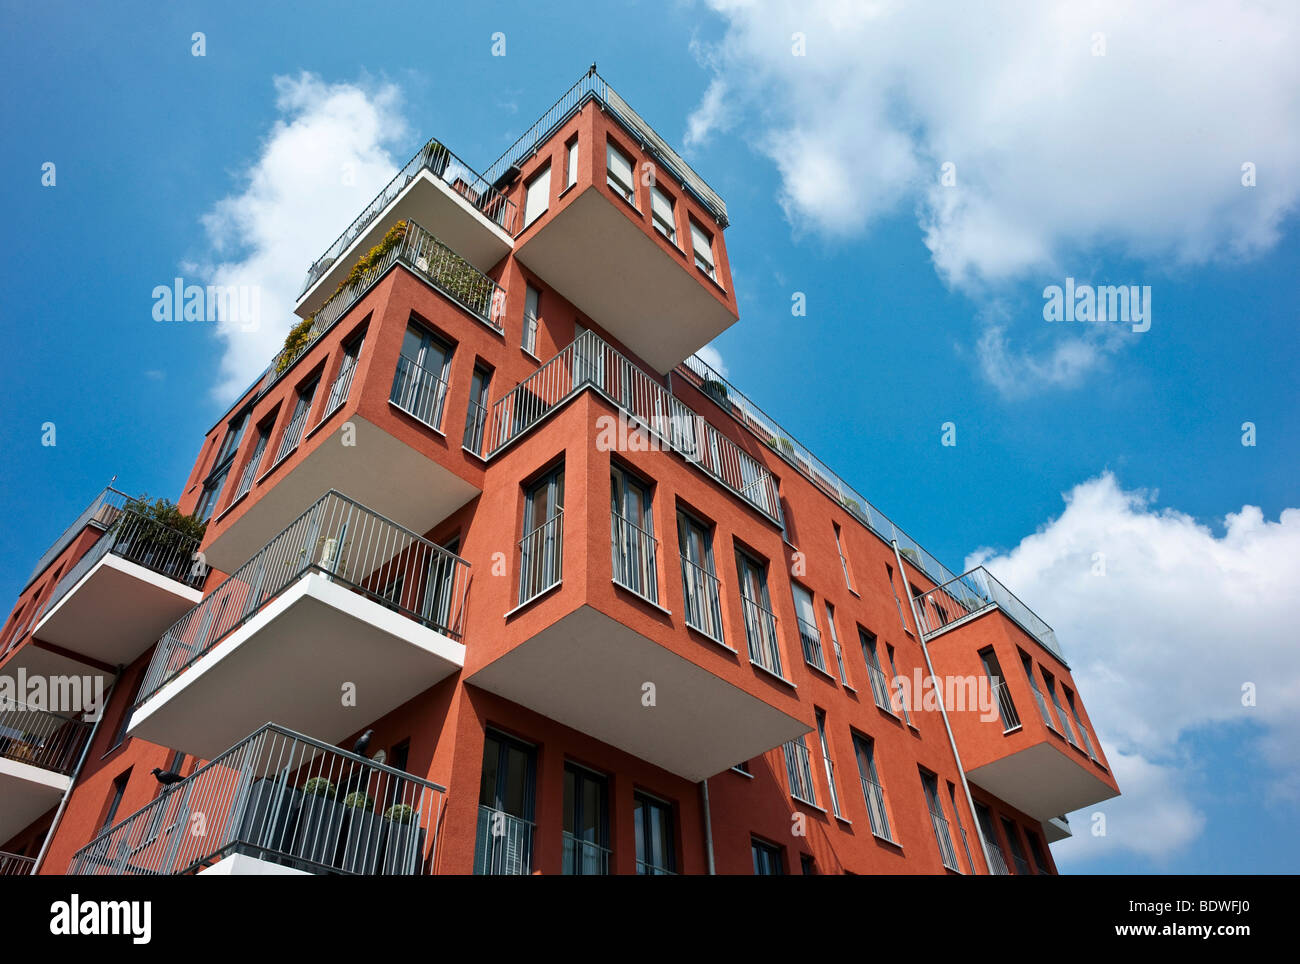 Luxurious owner-occupied flats in the West Port, Frankfurt, Hesse, Germany, Europe - Stock Image